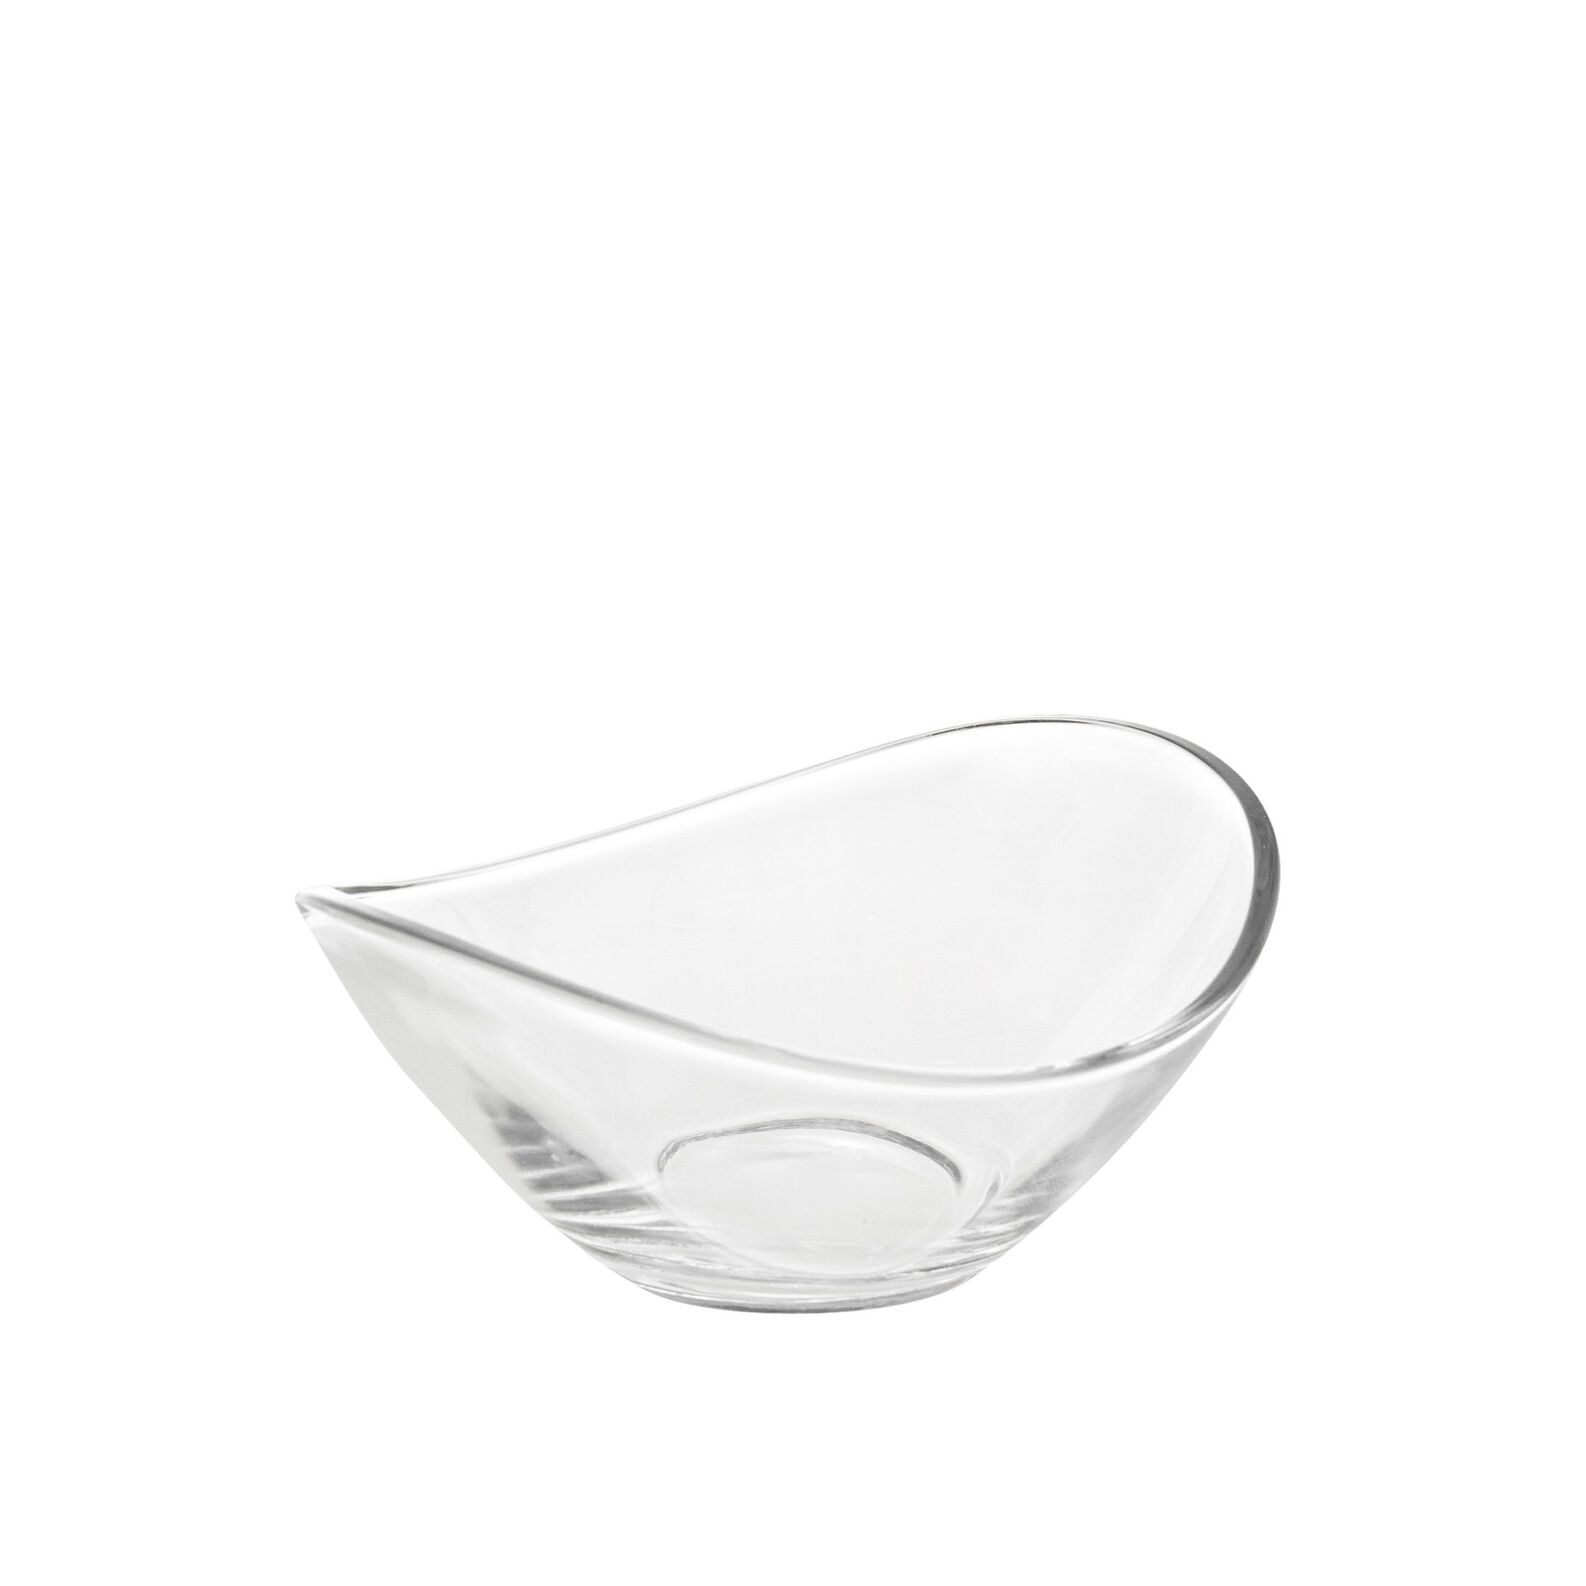 Glass dessert bowl with asymmetrical rim.